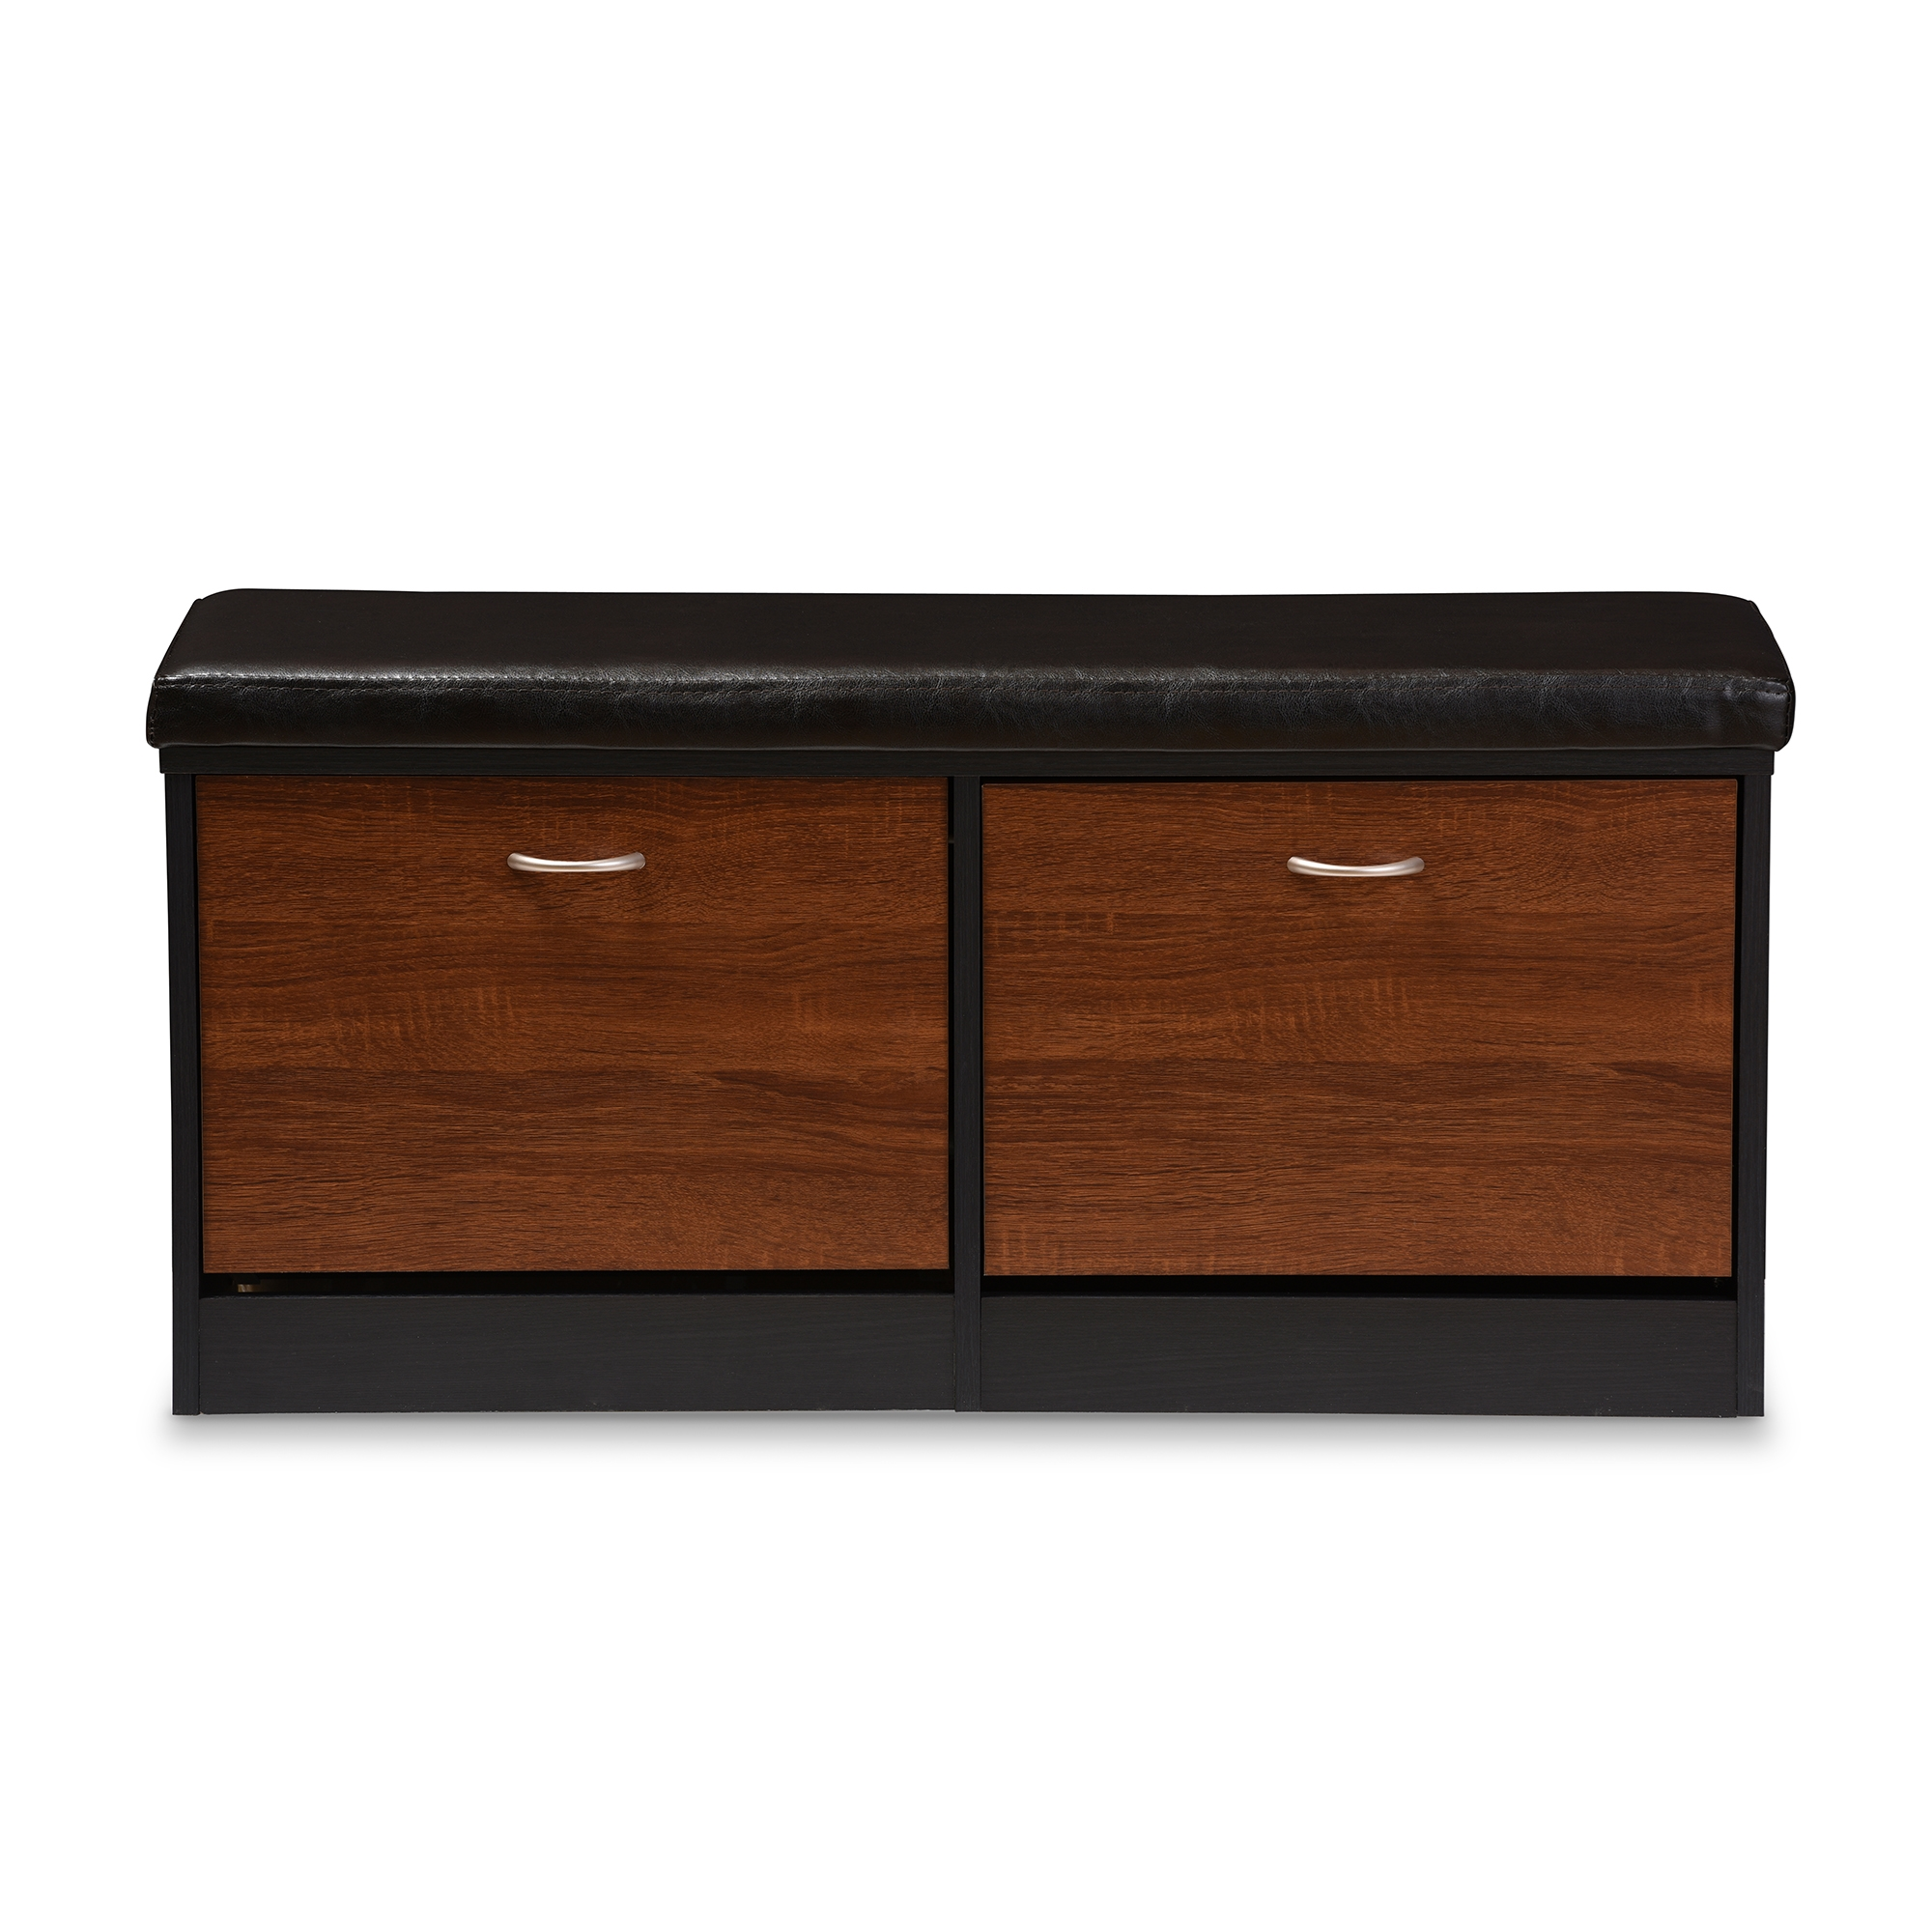 Baxton Studio Foley Modern and Contemporary 2 tone Dark Brown and